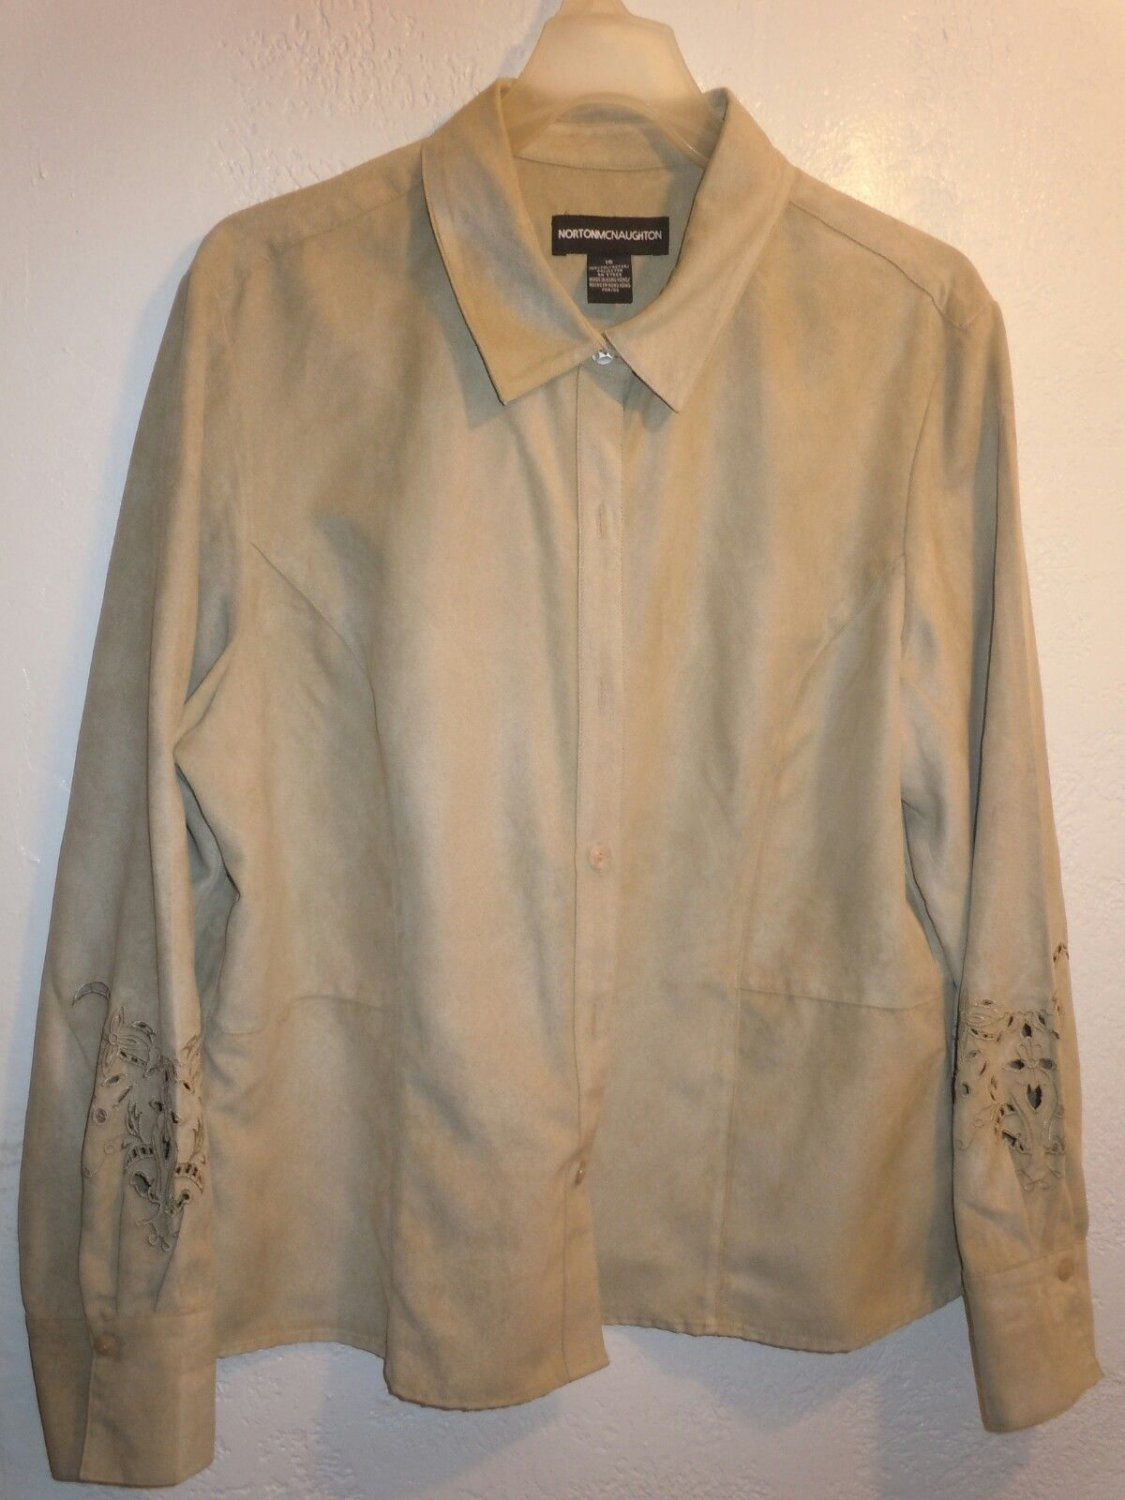 Womens Norton McNaughton Beige button front long sleeve shirt Size 16